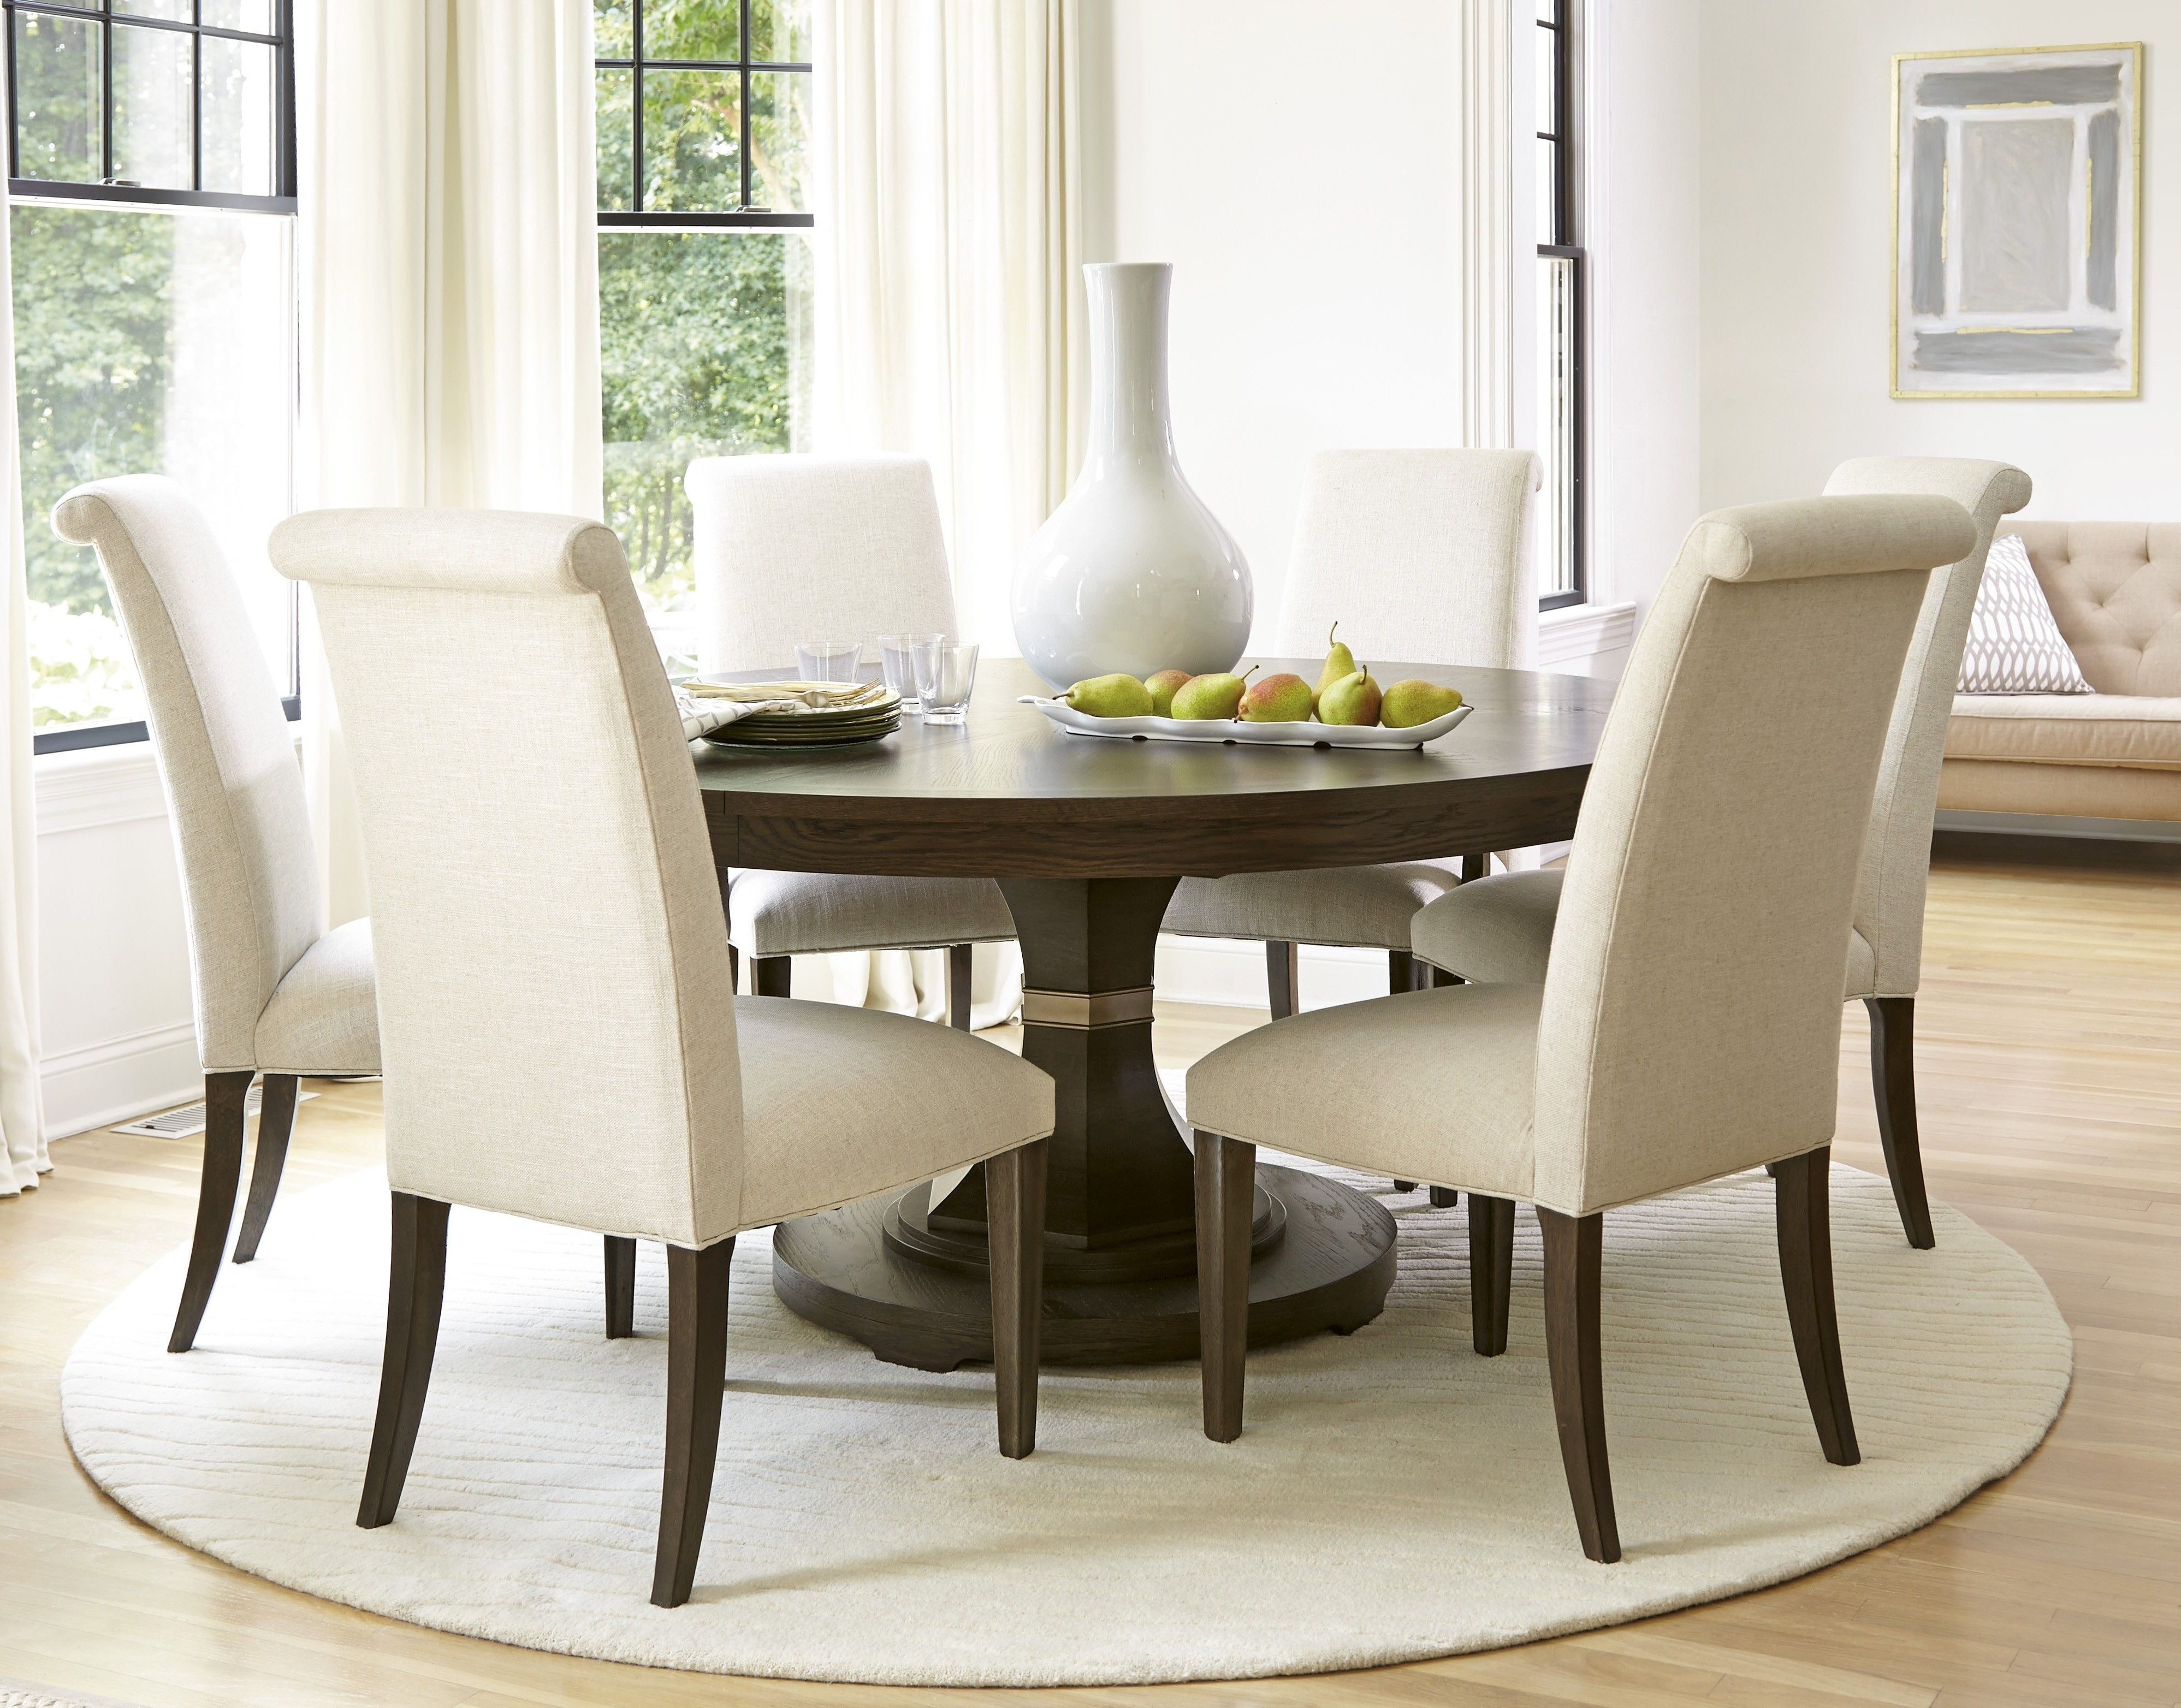 Pedestal Dining Tables And Chairs Throughout Most Up To Date White Round Pedestal Dining Table Set (Gallery 1 of 25)